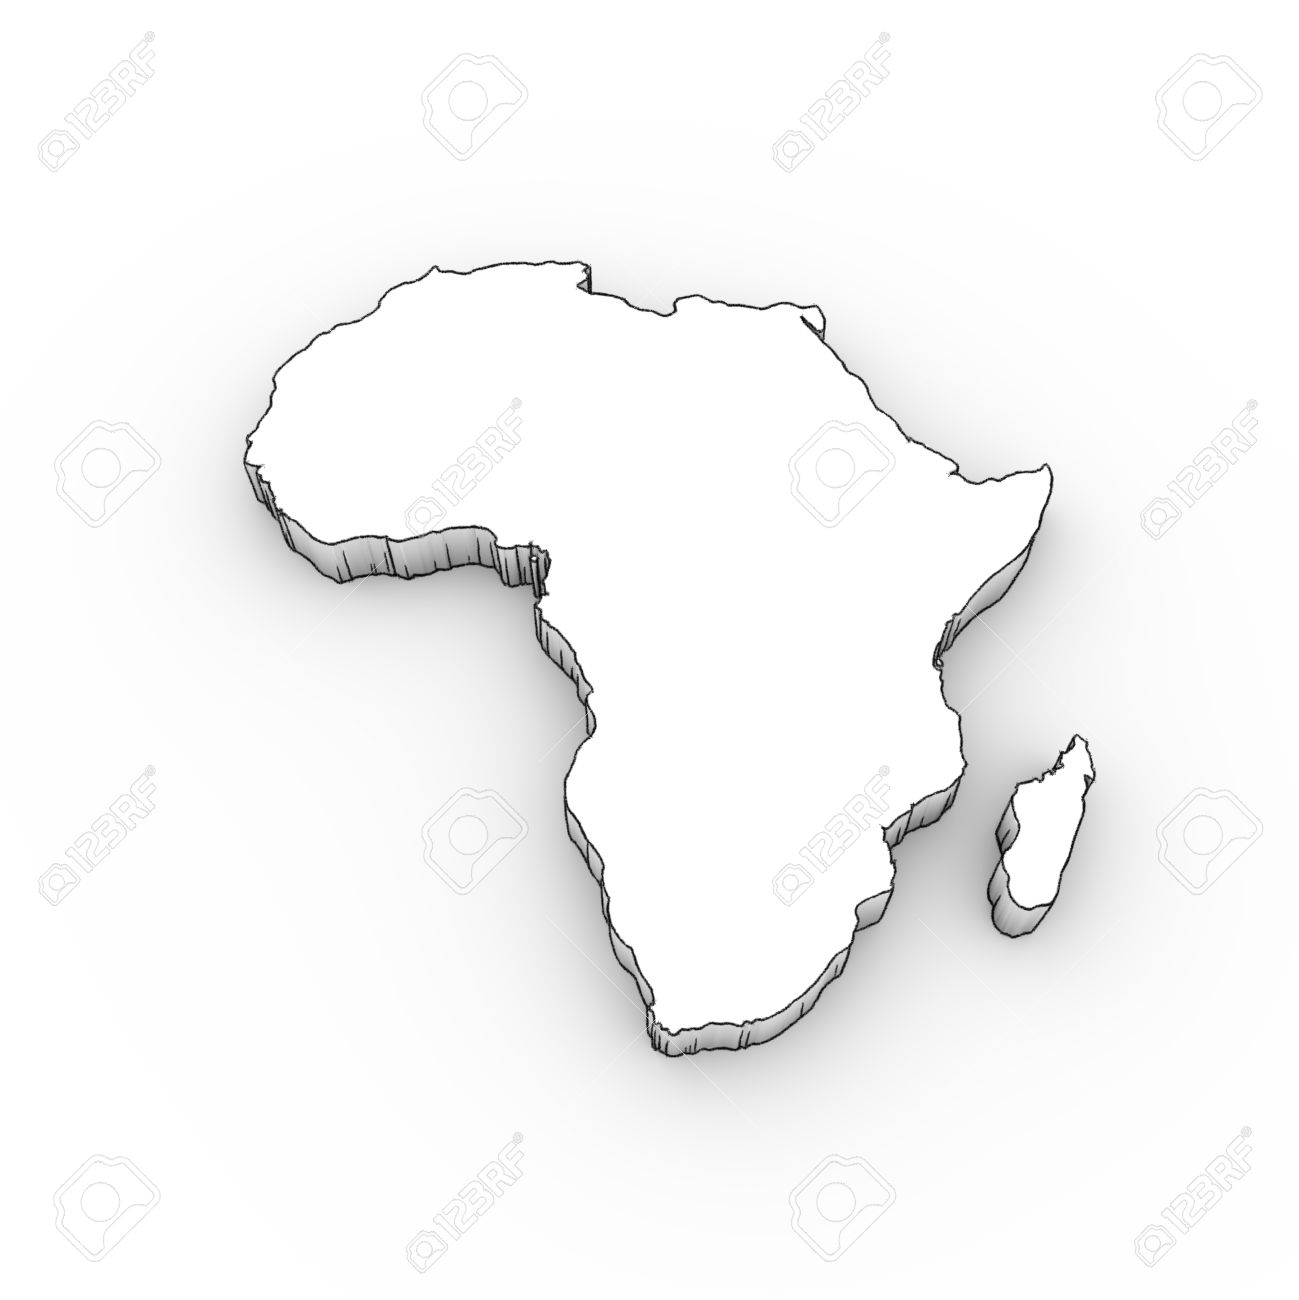 Map Of Africa 3d.Map Of Africa Drawing At Getdrawings Com Free For Personal Use Map